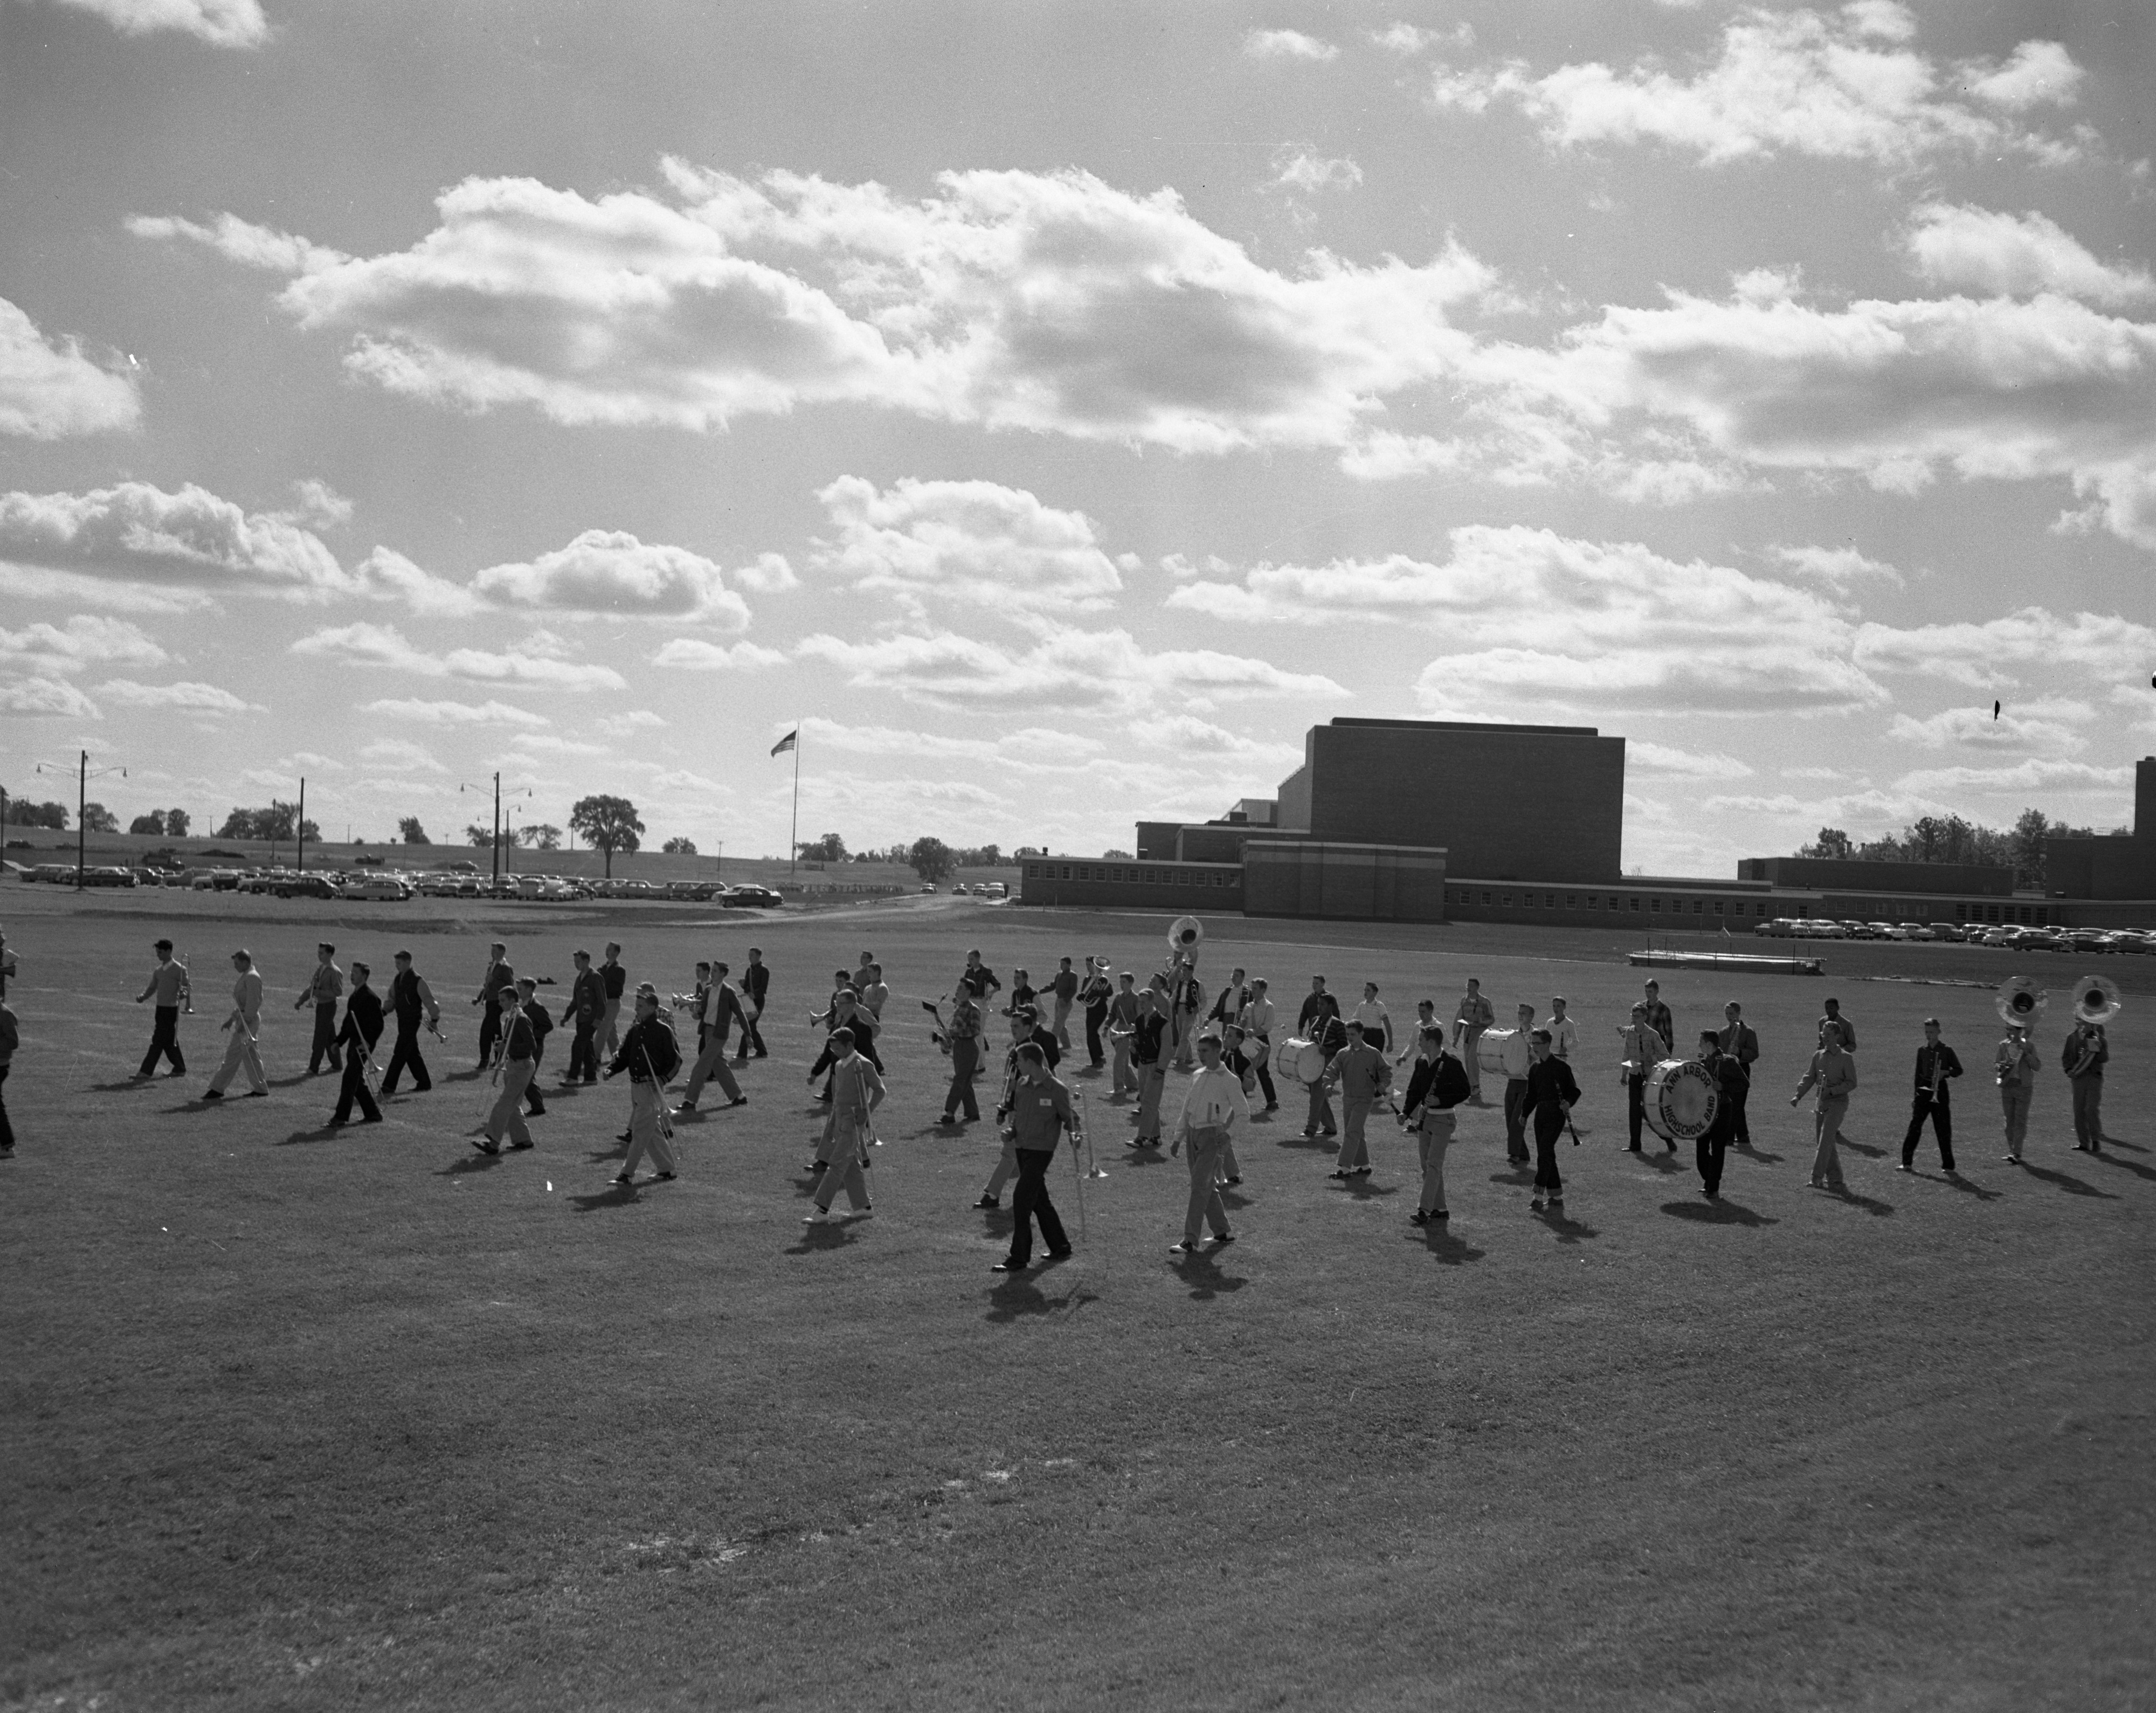 Ann Arbor High vs. Grosse Pointe Football Game, September 1959 image